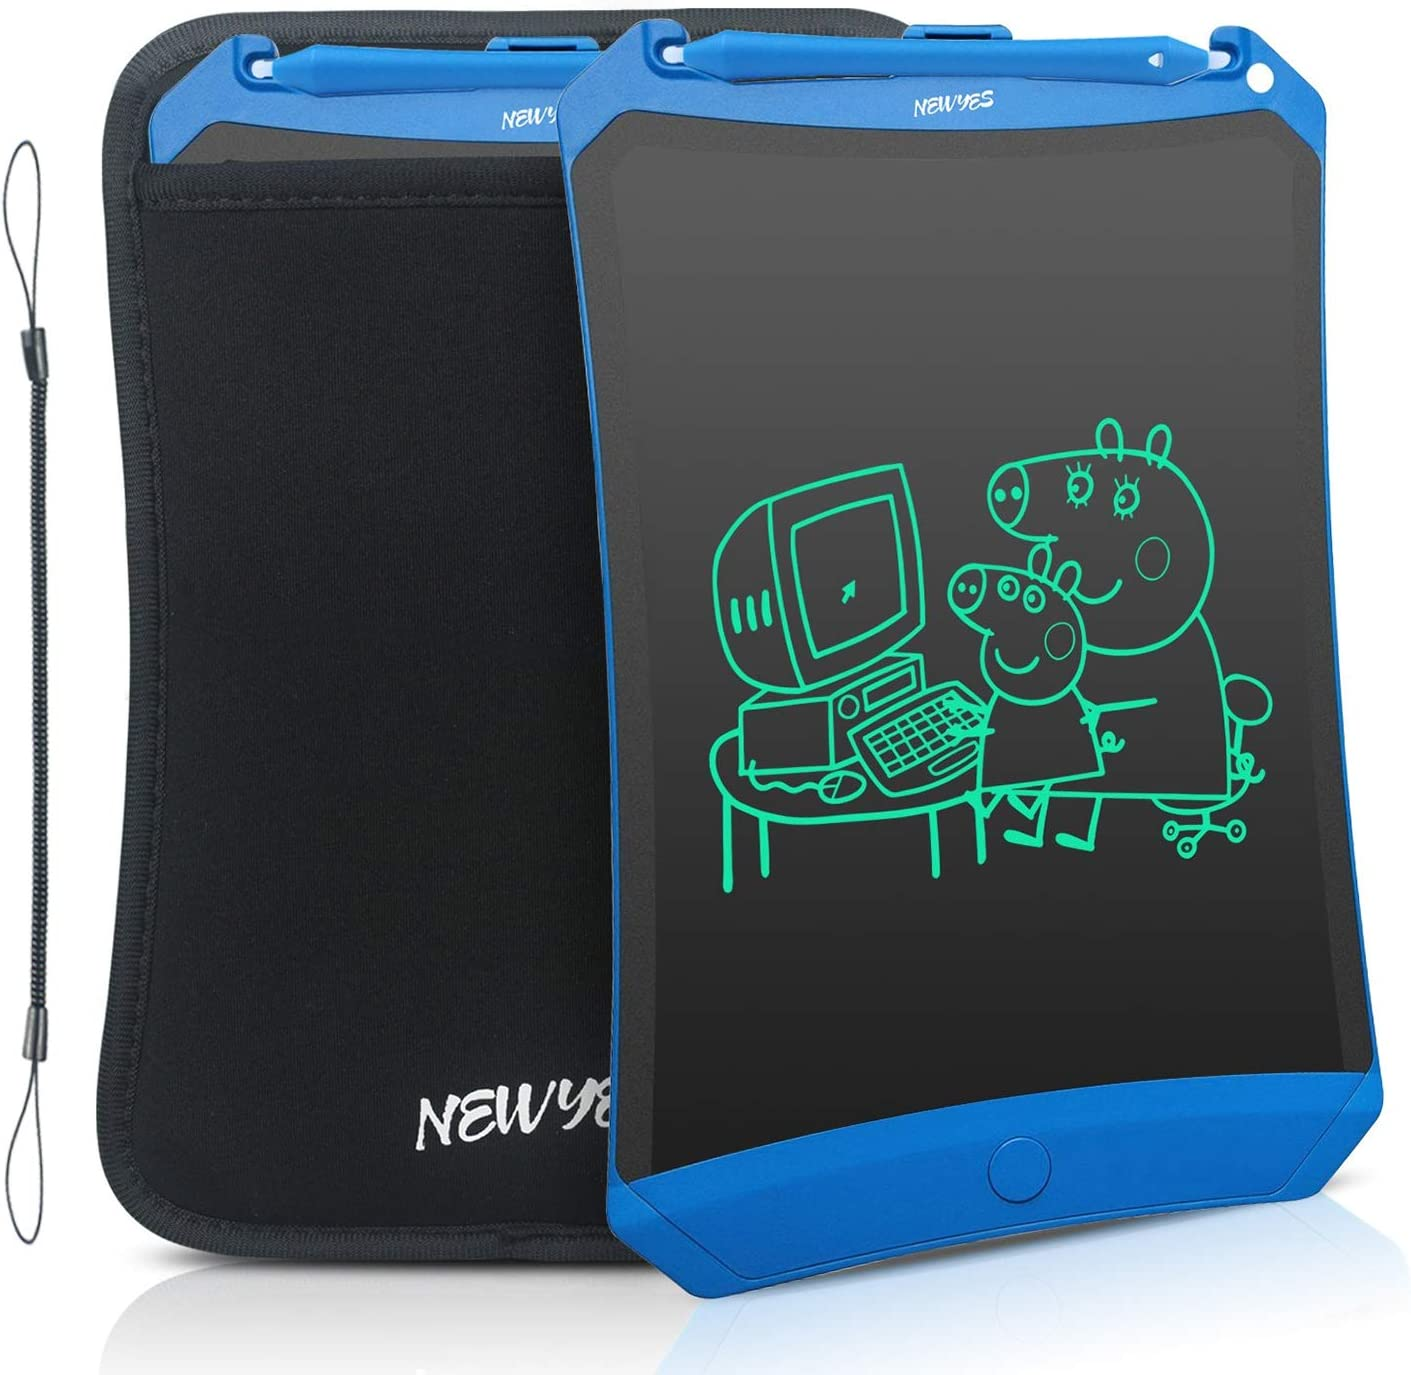 NEWYES Robot Pad 8.5 Inch LCD Writing Tablet Electronic Writing Pads Drawing Board Gifts for Kids Office Blackboard with Lock Function (Blue+Case+Lanyard)